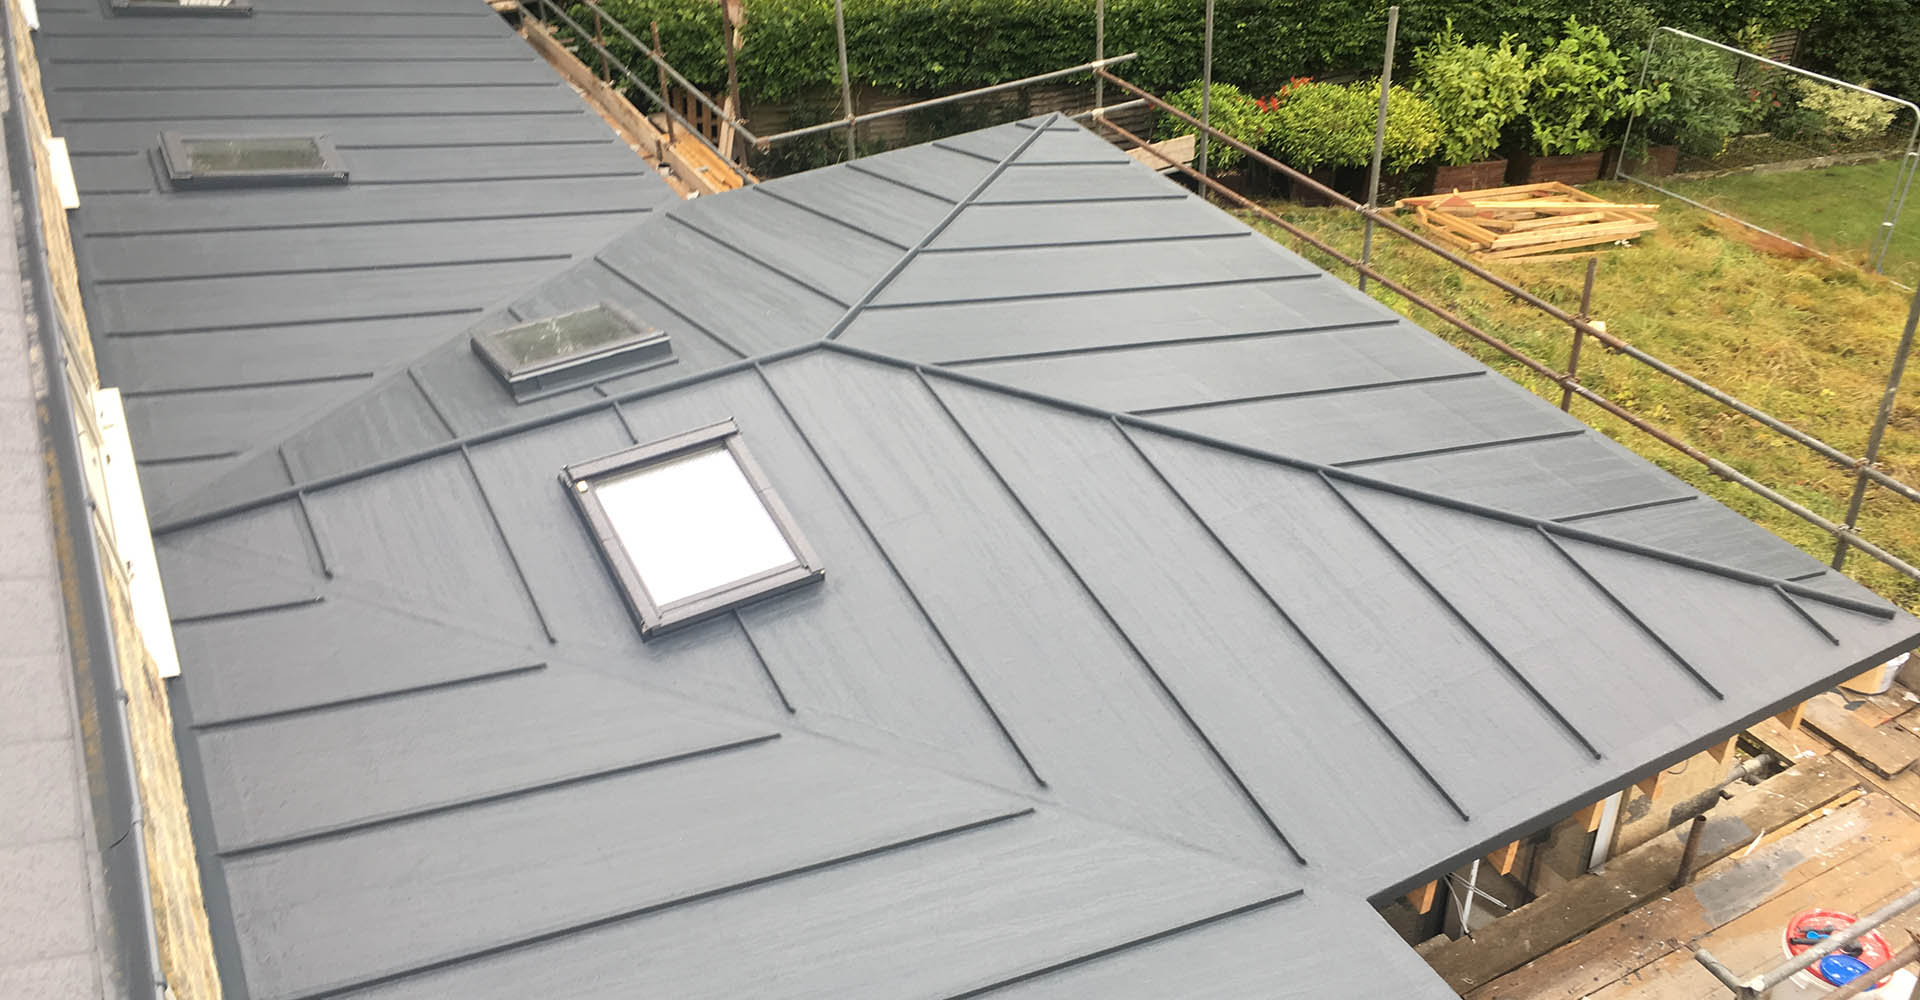 Polyroof delivers a zinc effect roof for Harrogate home